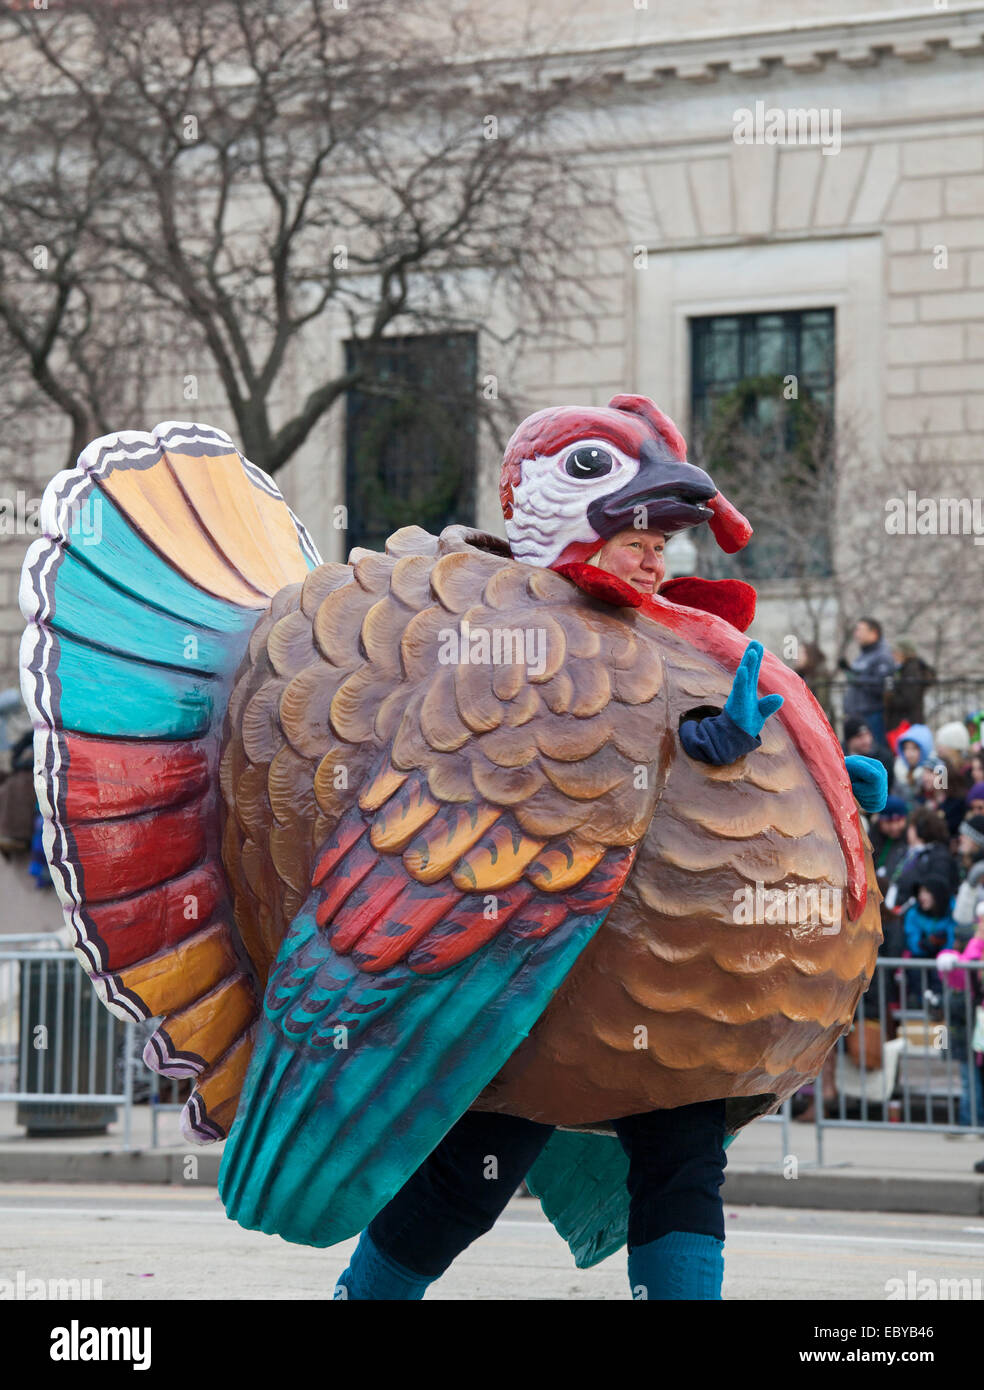 Detroit's Thanksgiving Day Parade, officially called America's Thanksgiving Parade. - Stock Image